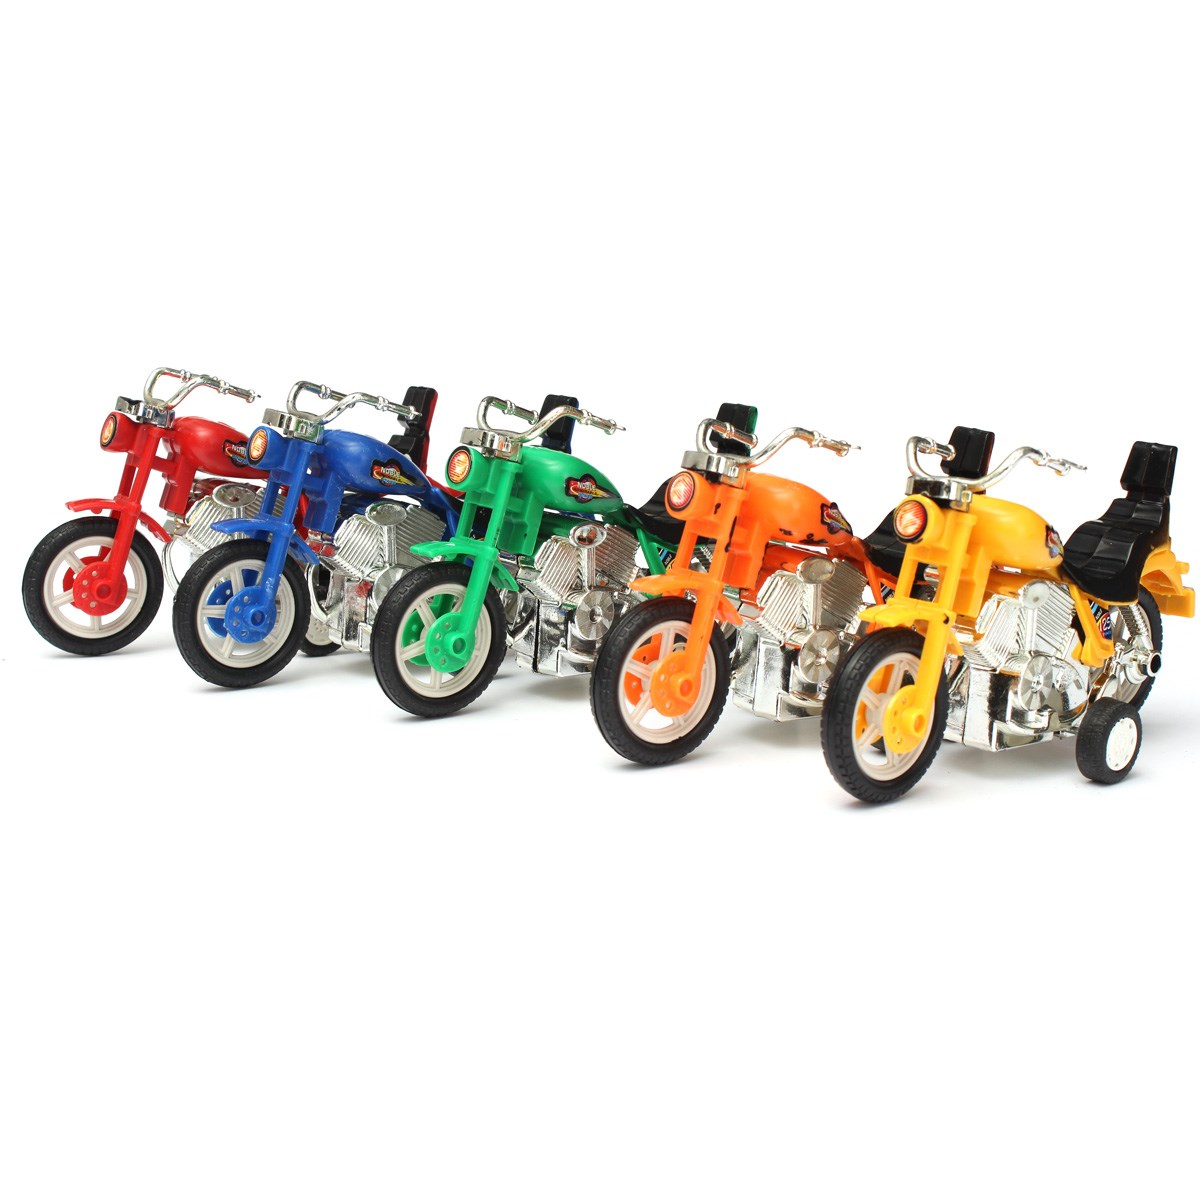 Wholesale Funny 1Pcs Mini Baby Motorcycle Toy Model Educational Children Kids Child Play Vehicles Gift New(China (Mainland))